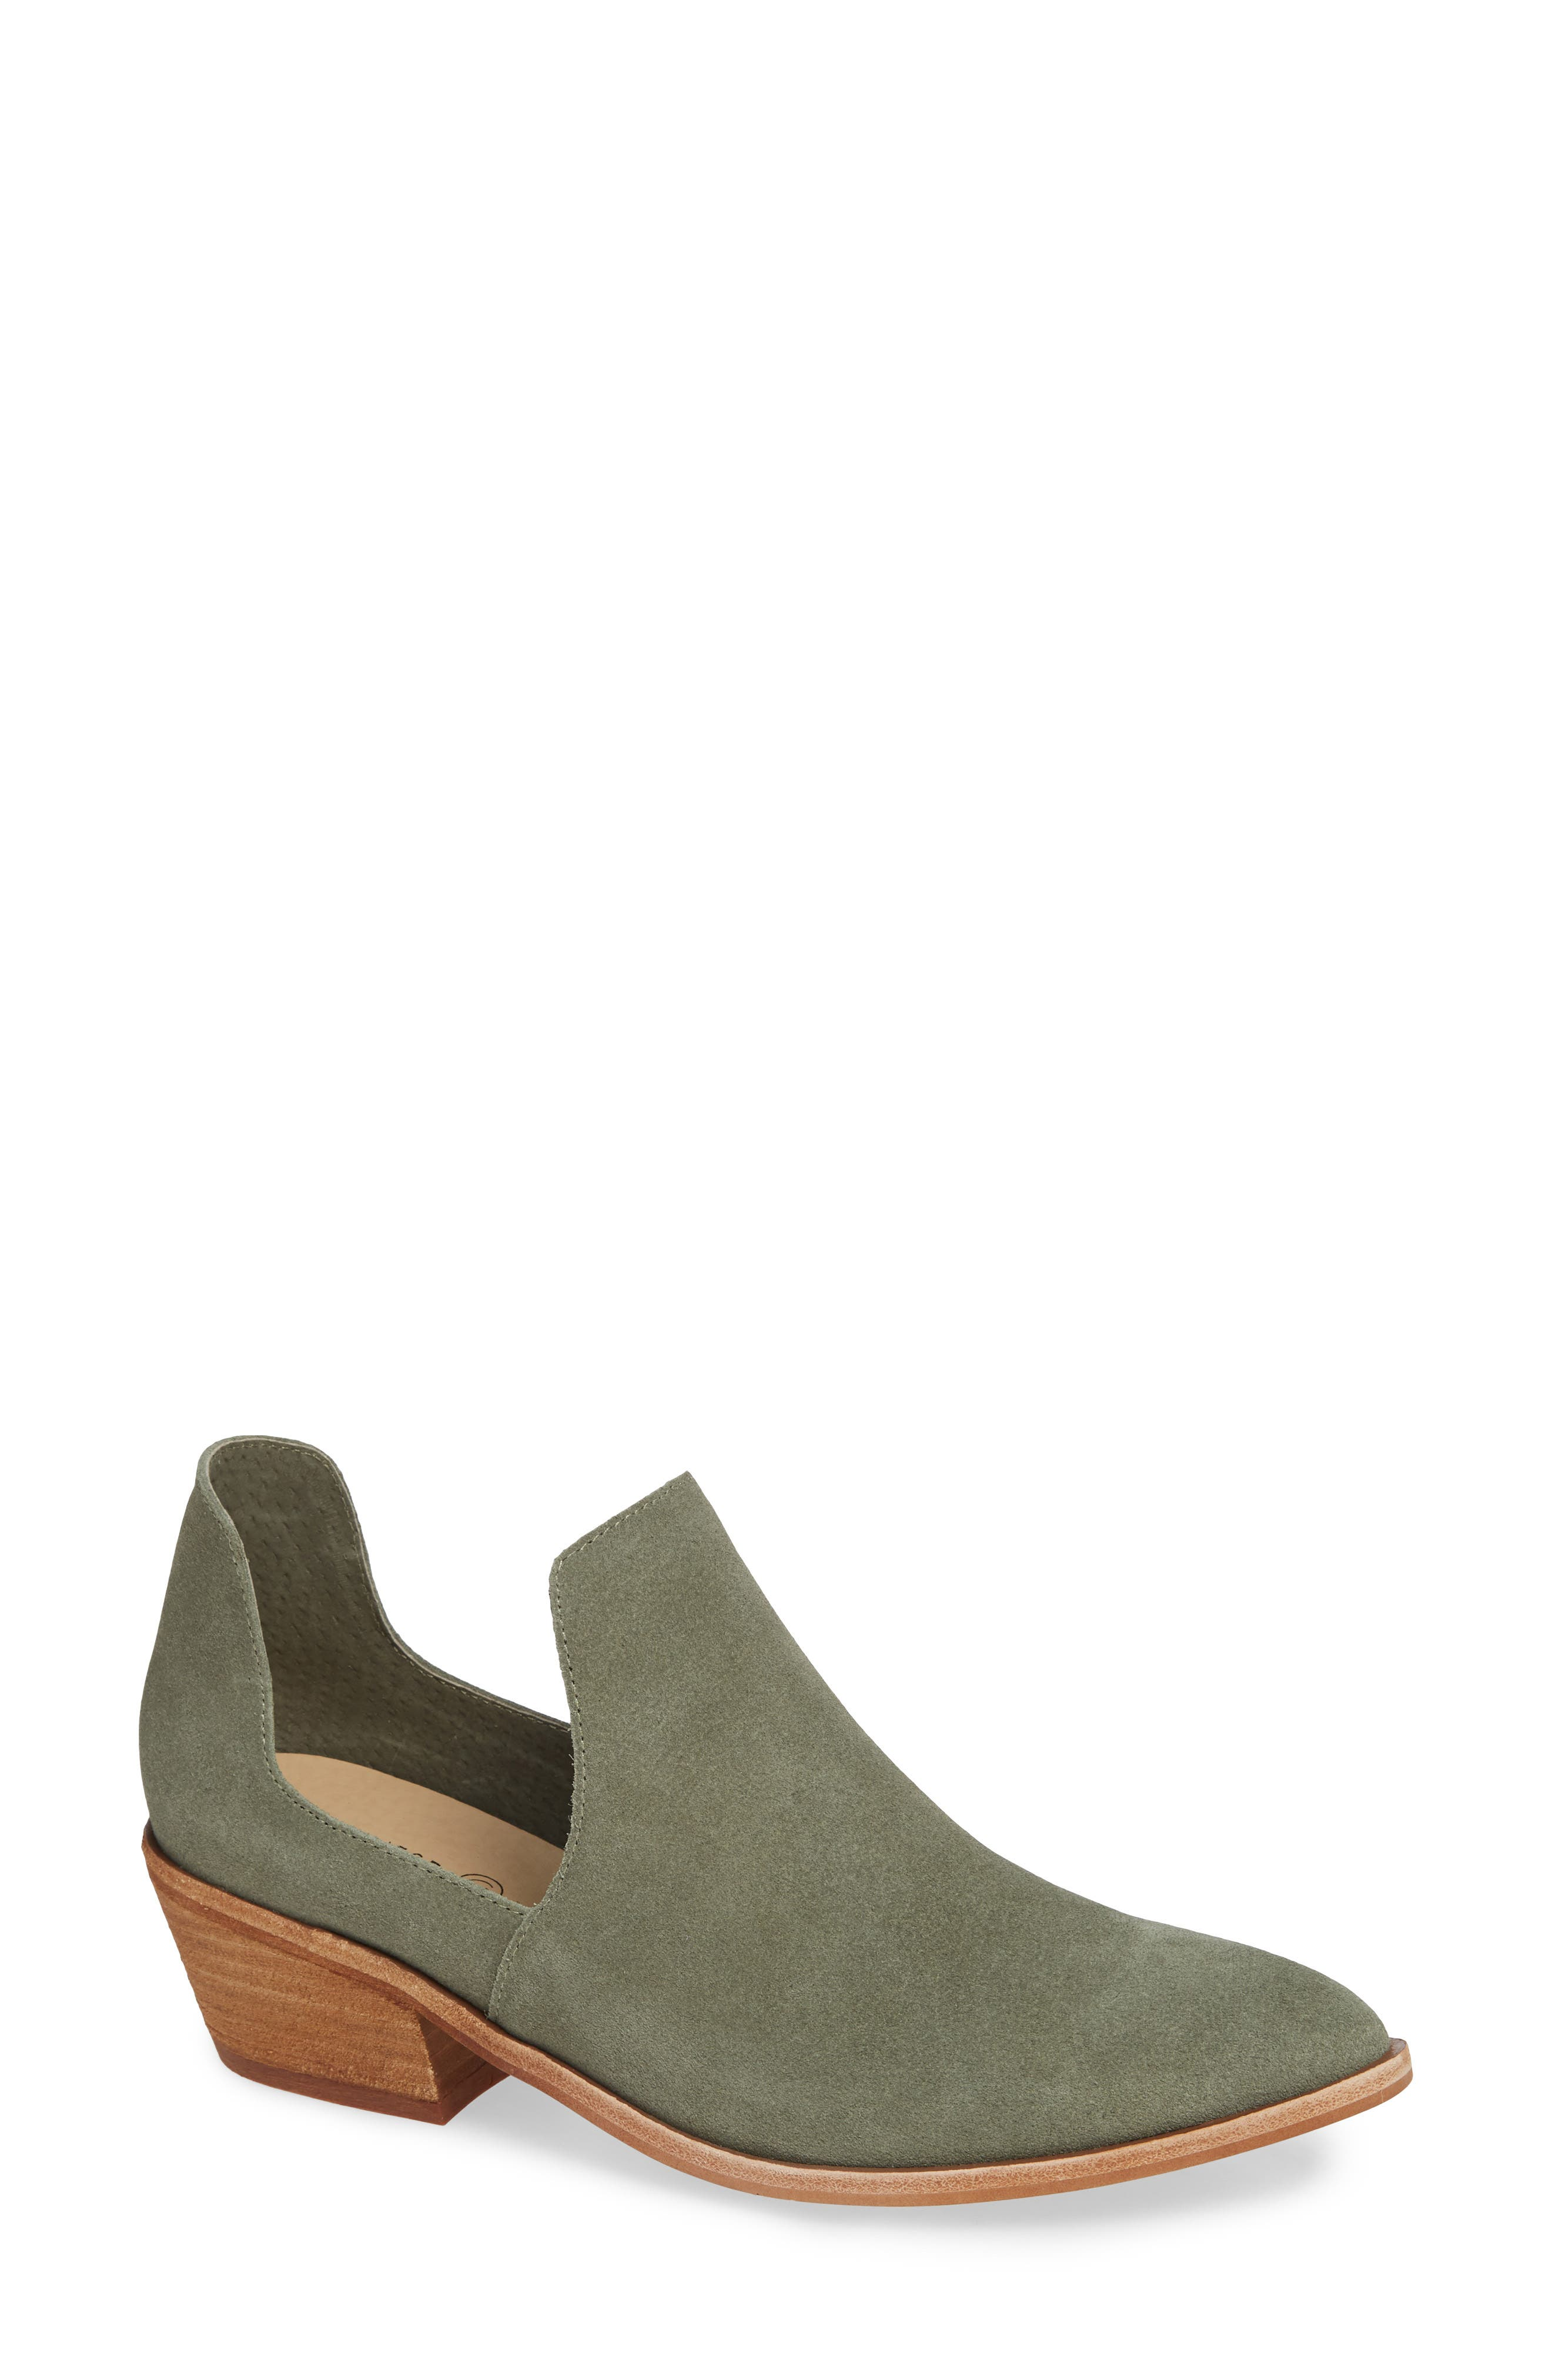 Focus Open Sided Bootie,                             Main thumbnail 1, color,                             OLIVE SUEDE